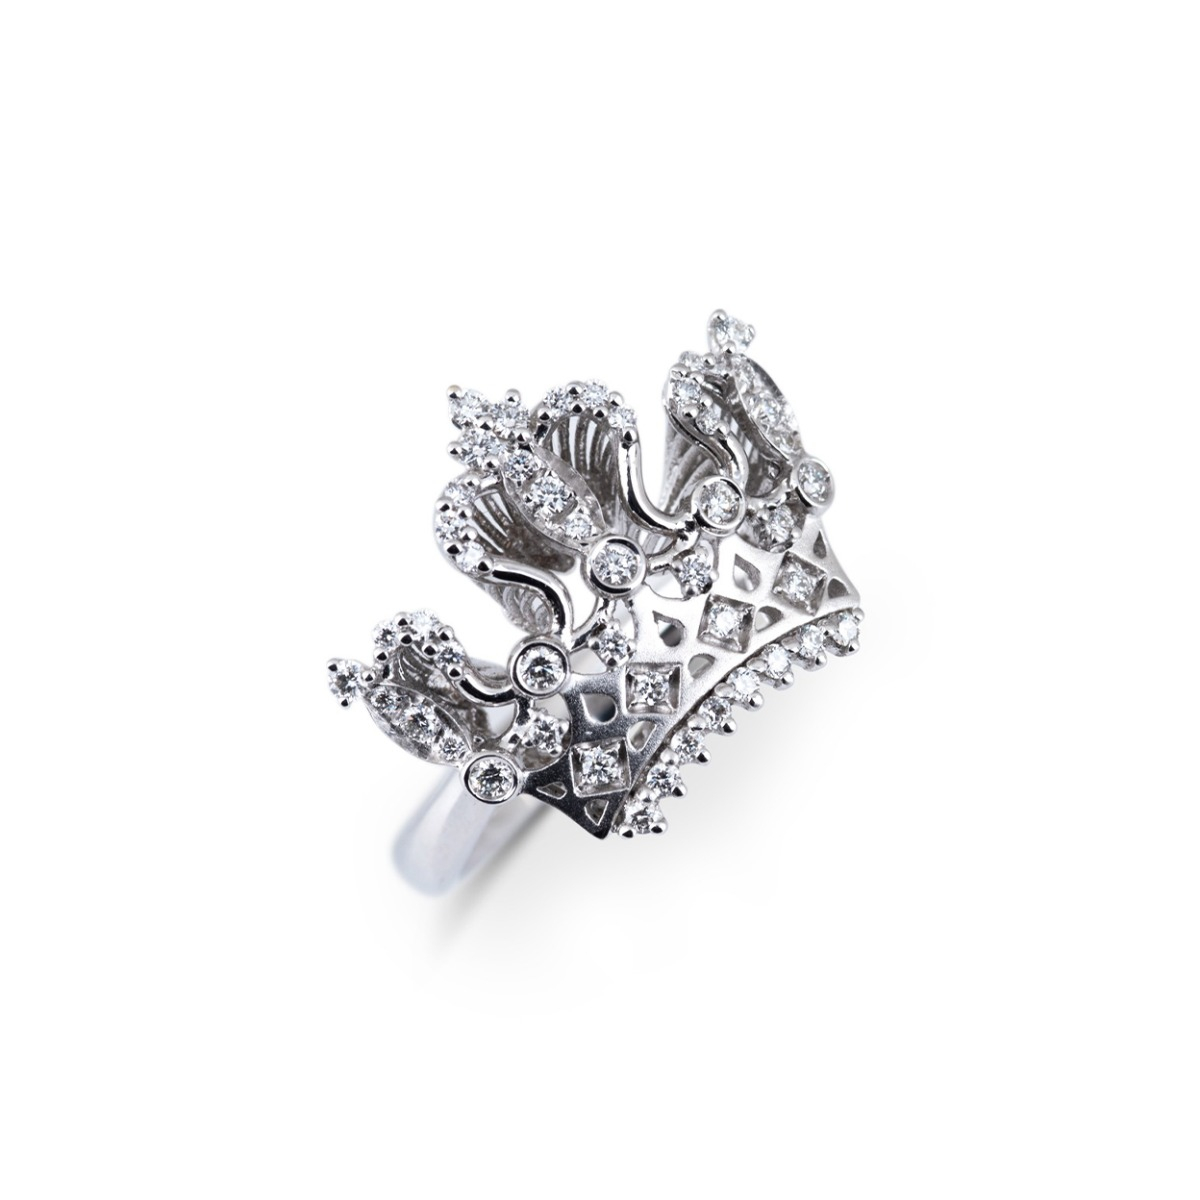 White Gold Crown Ring with Diamonds